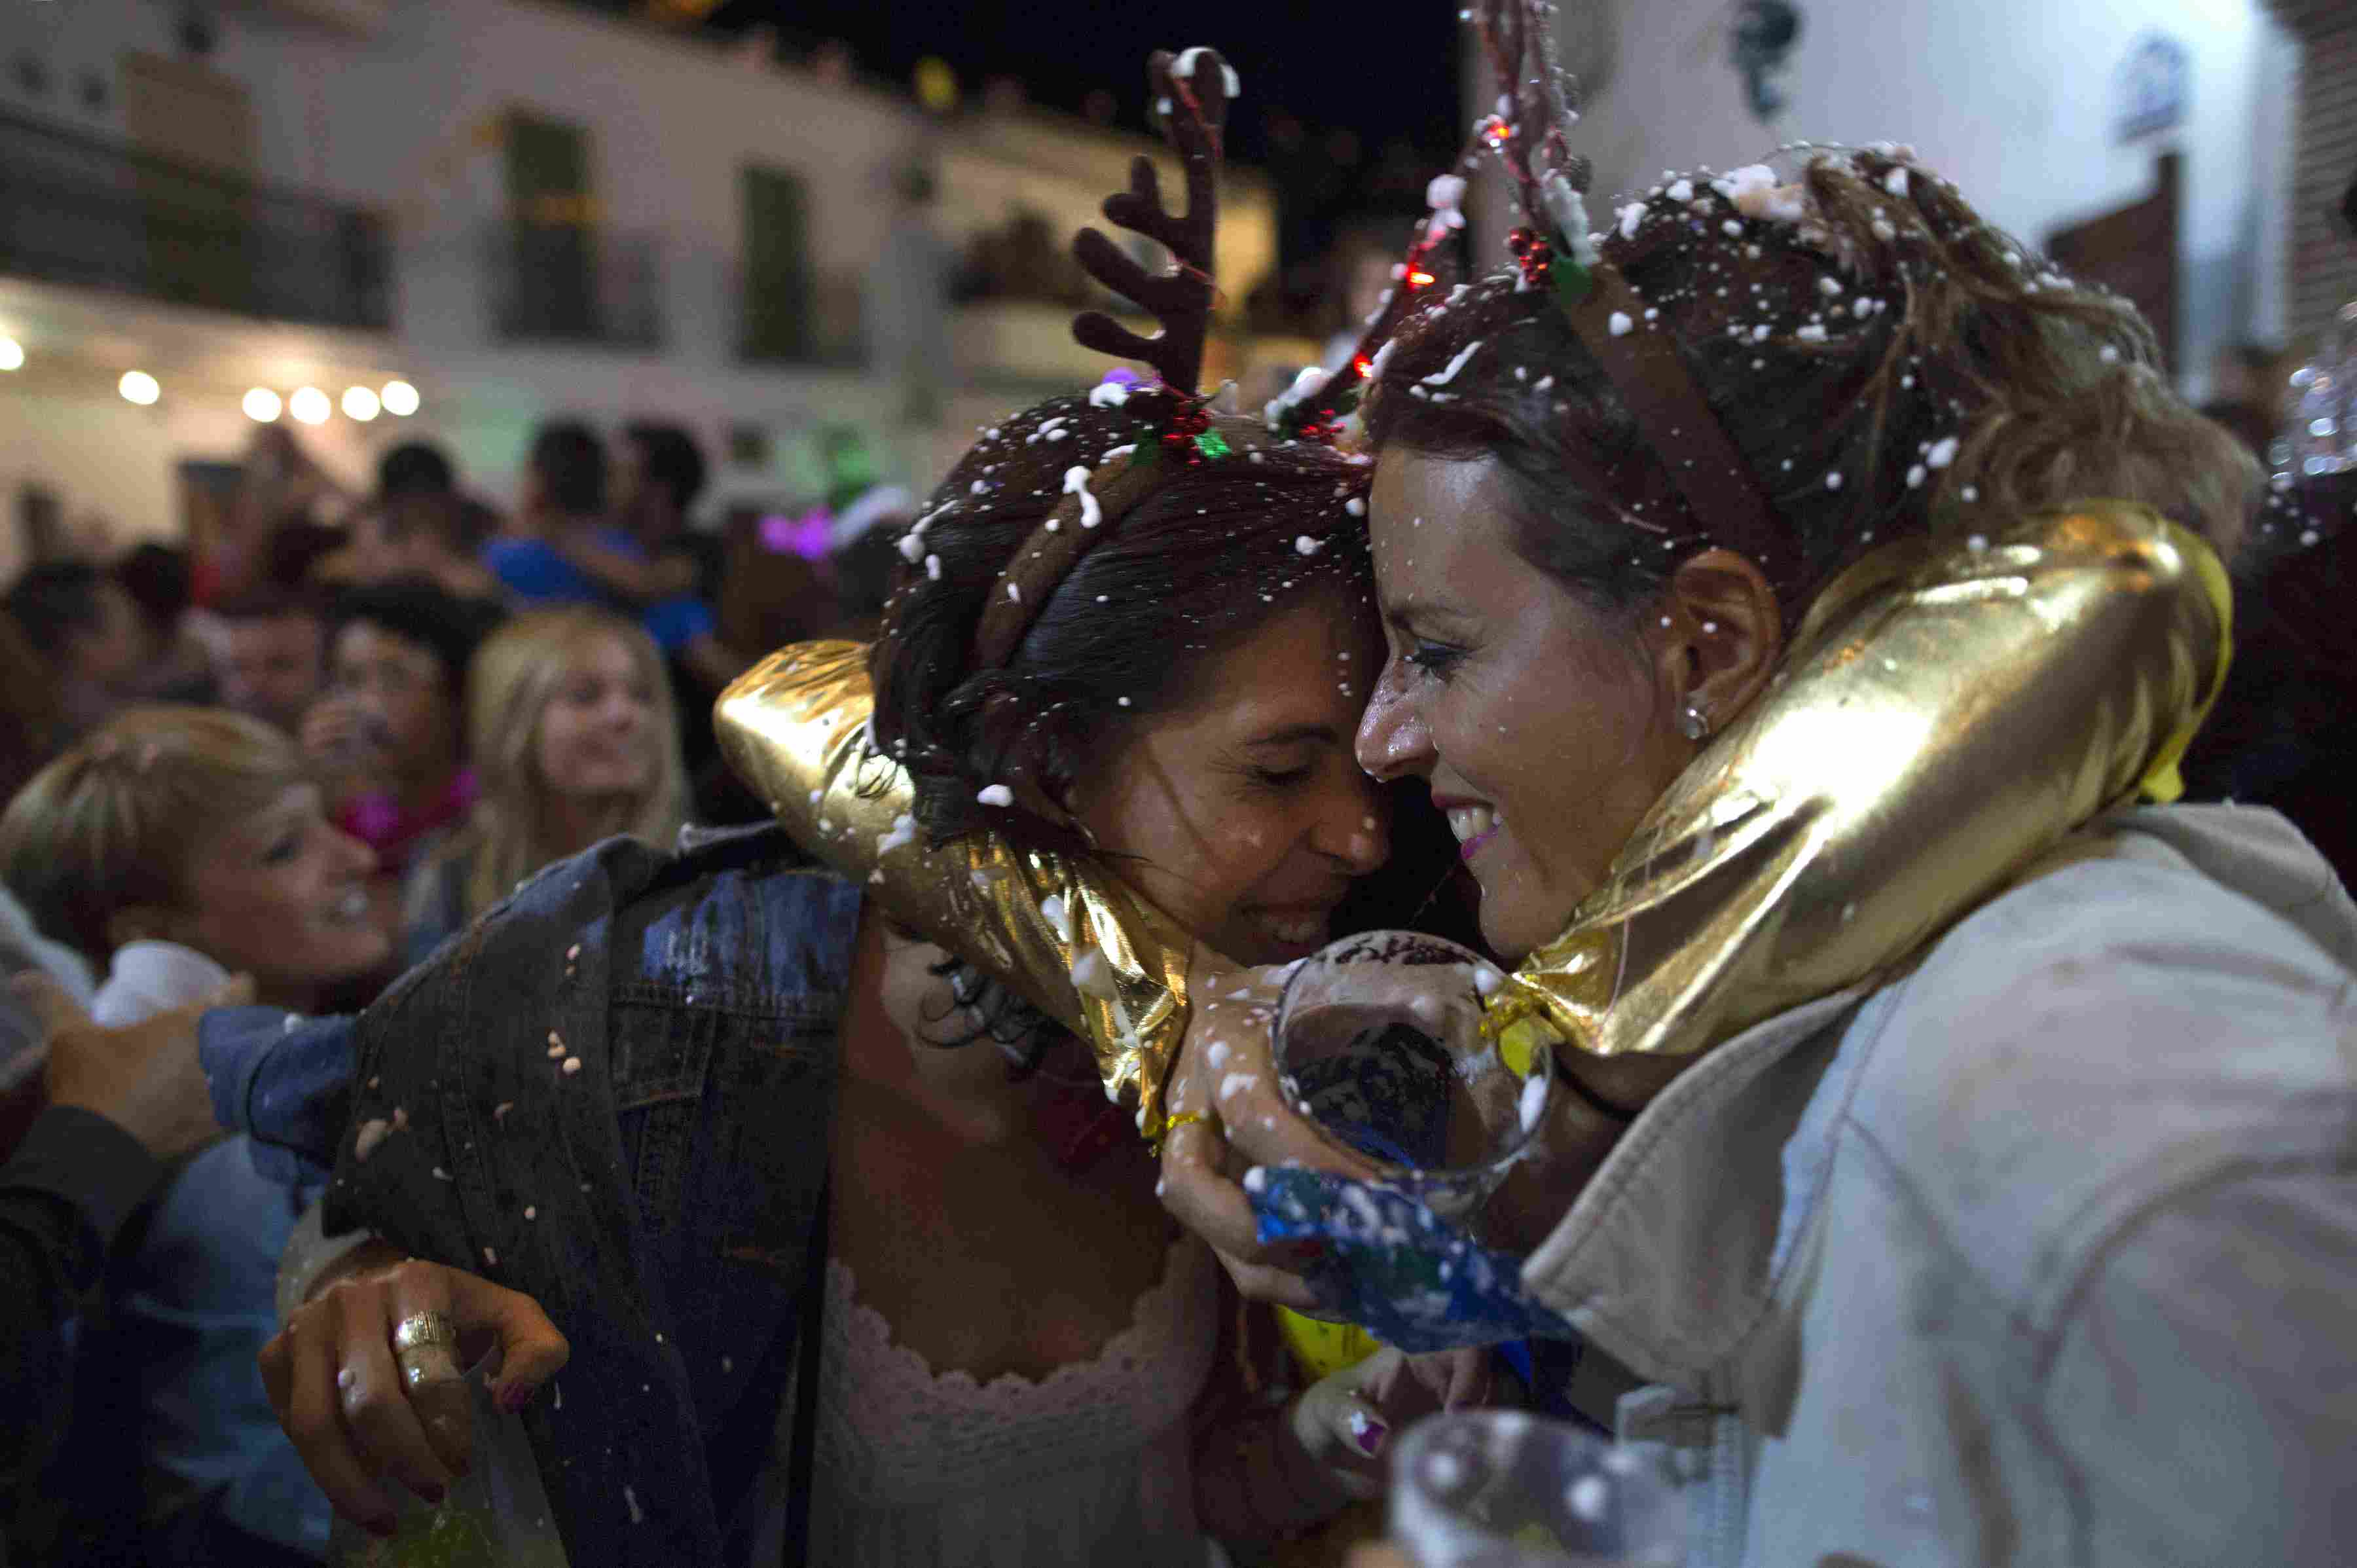 Two women celebrating New Year's Eve in August